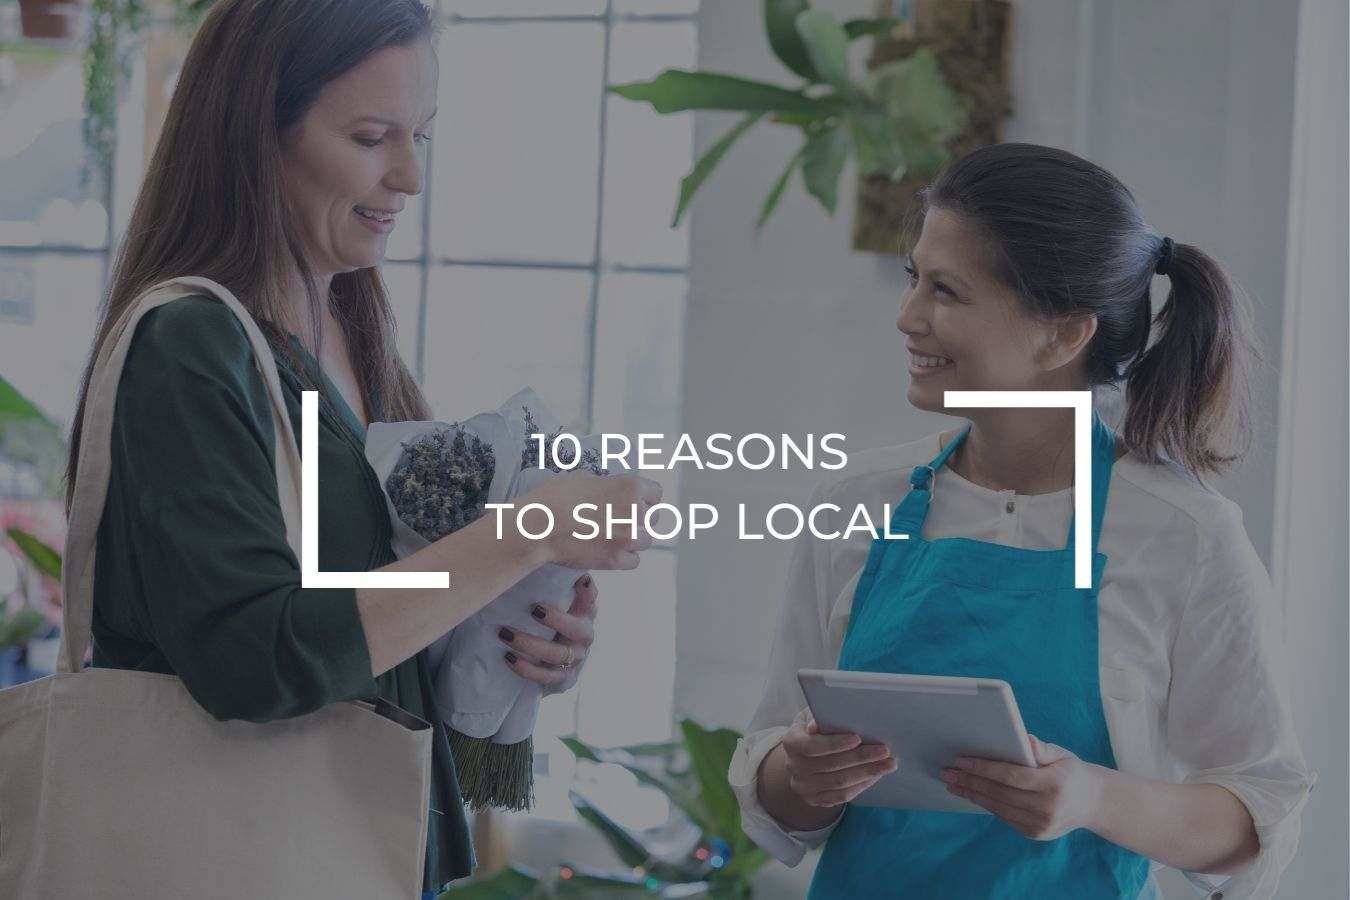 10 reasons to shop local